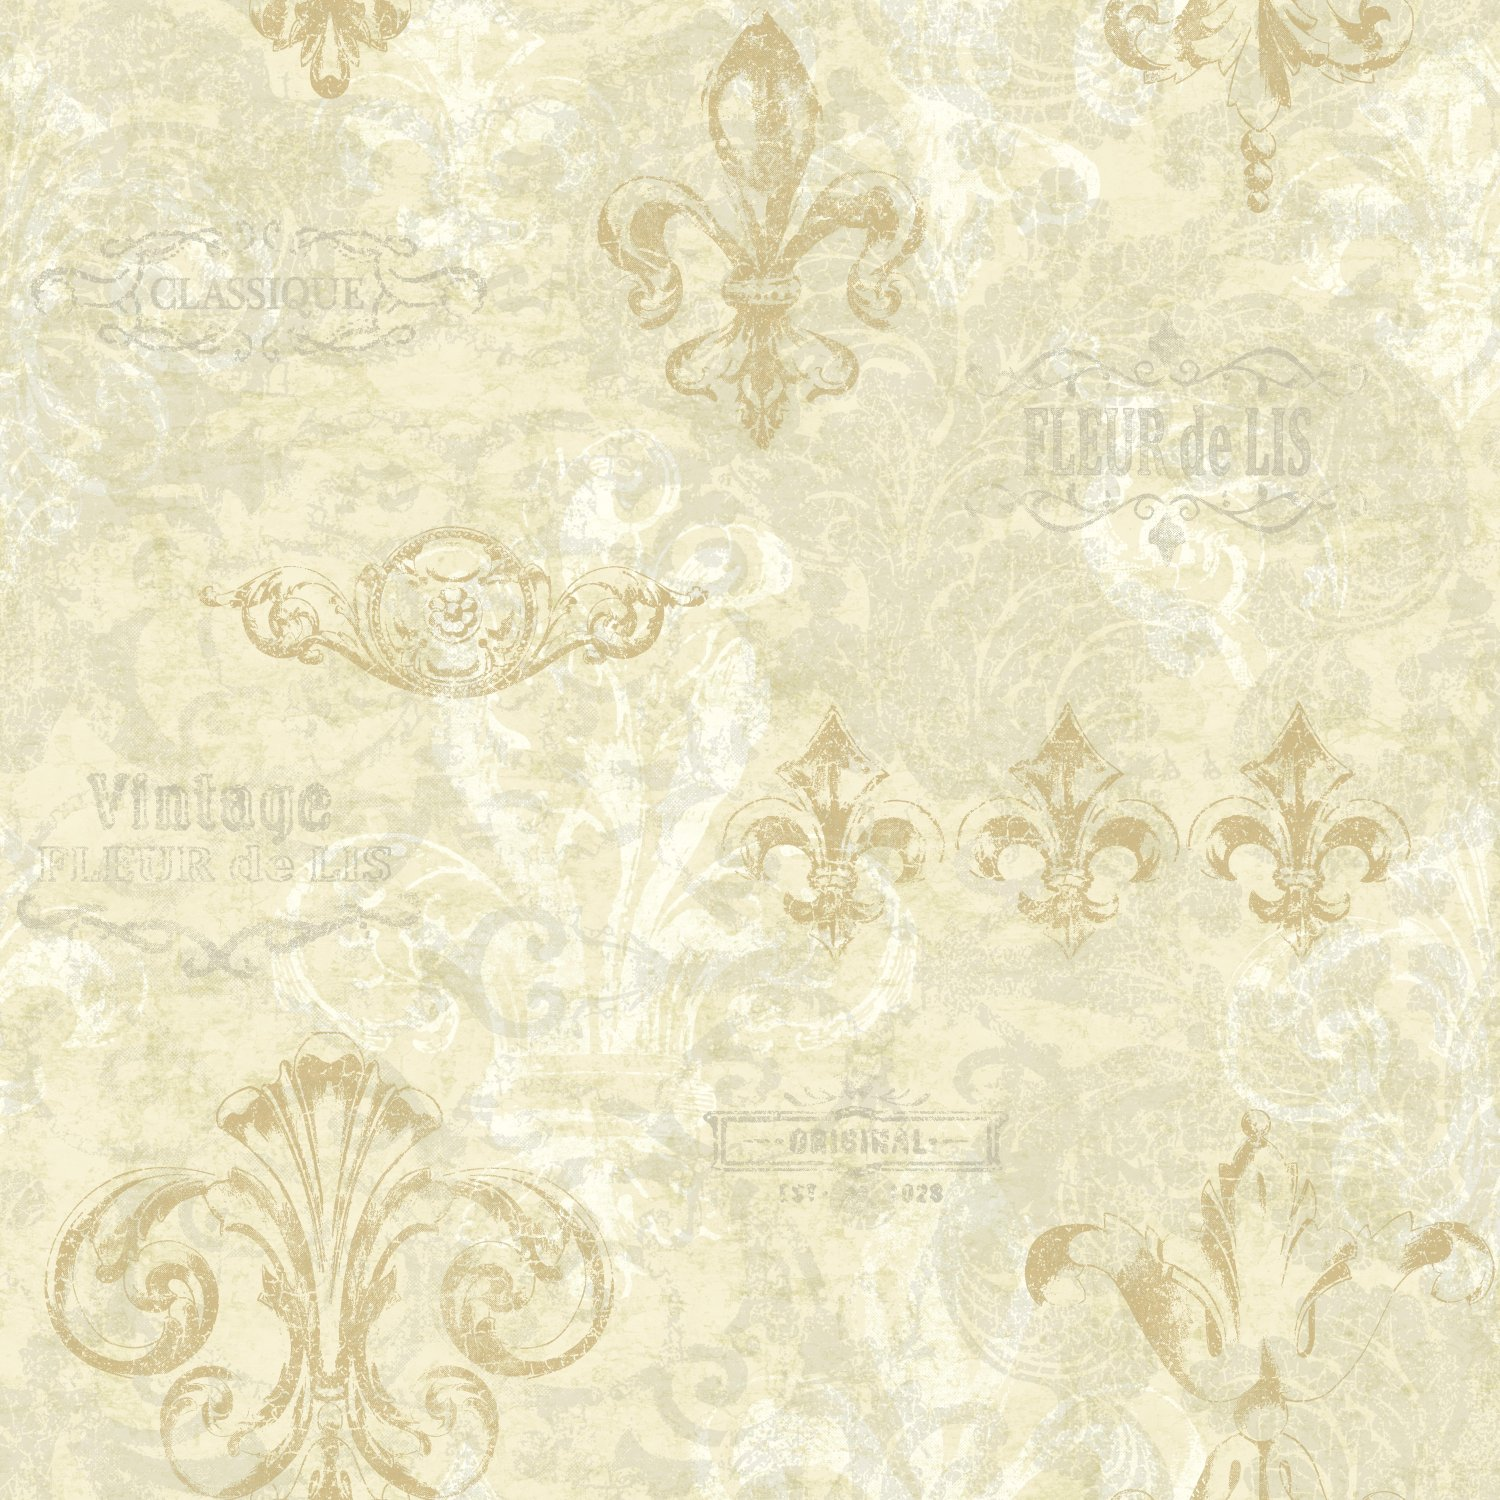 York Wallcoverings KH7027 Kitchen & Bath Fleur Wallpaper, Beige/White/Antique Silver/Old Gold/Cloudy Grey